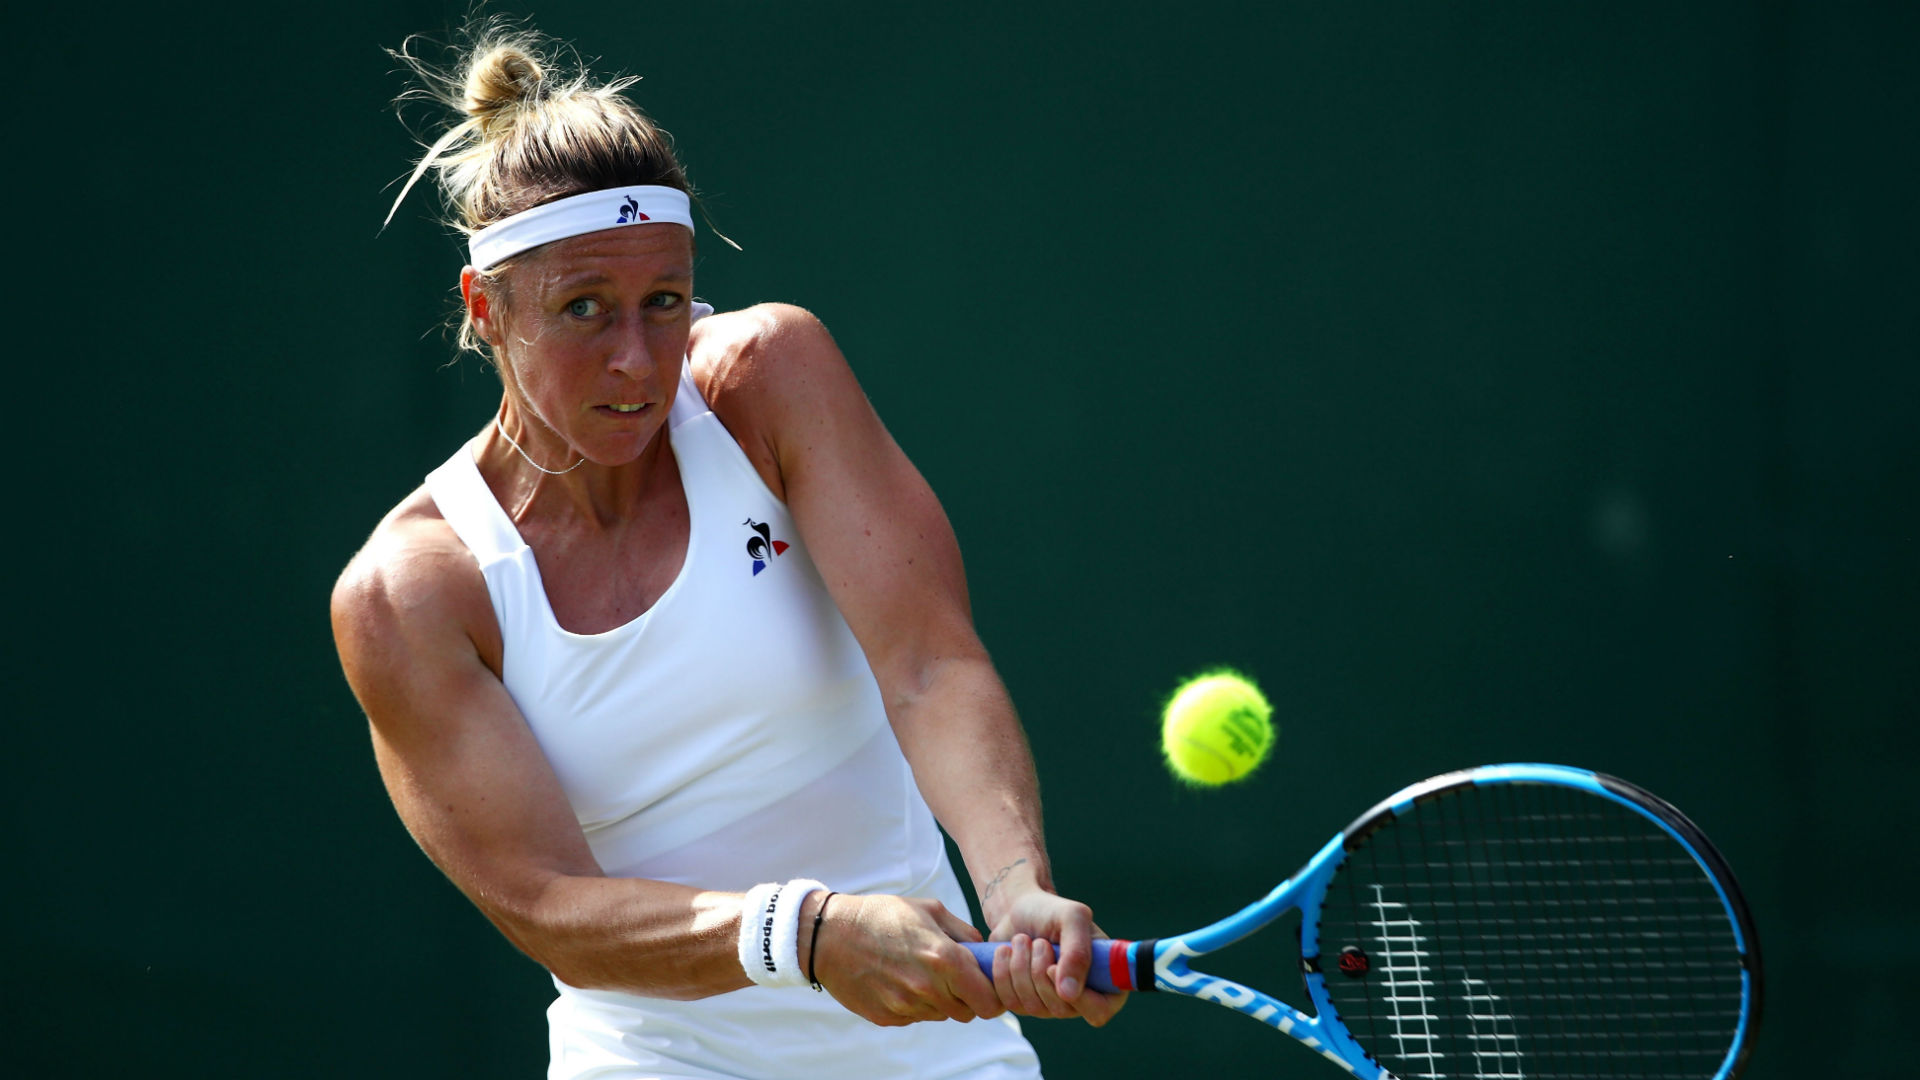 Parmentier rallies to avoid Bucharest exit, Arruabarrena bows out in Gstaad